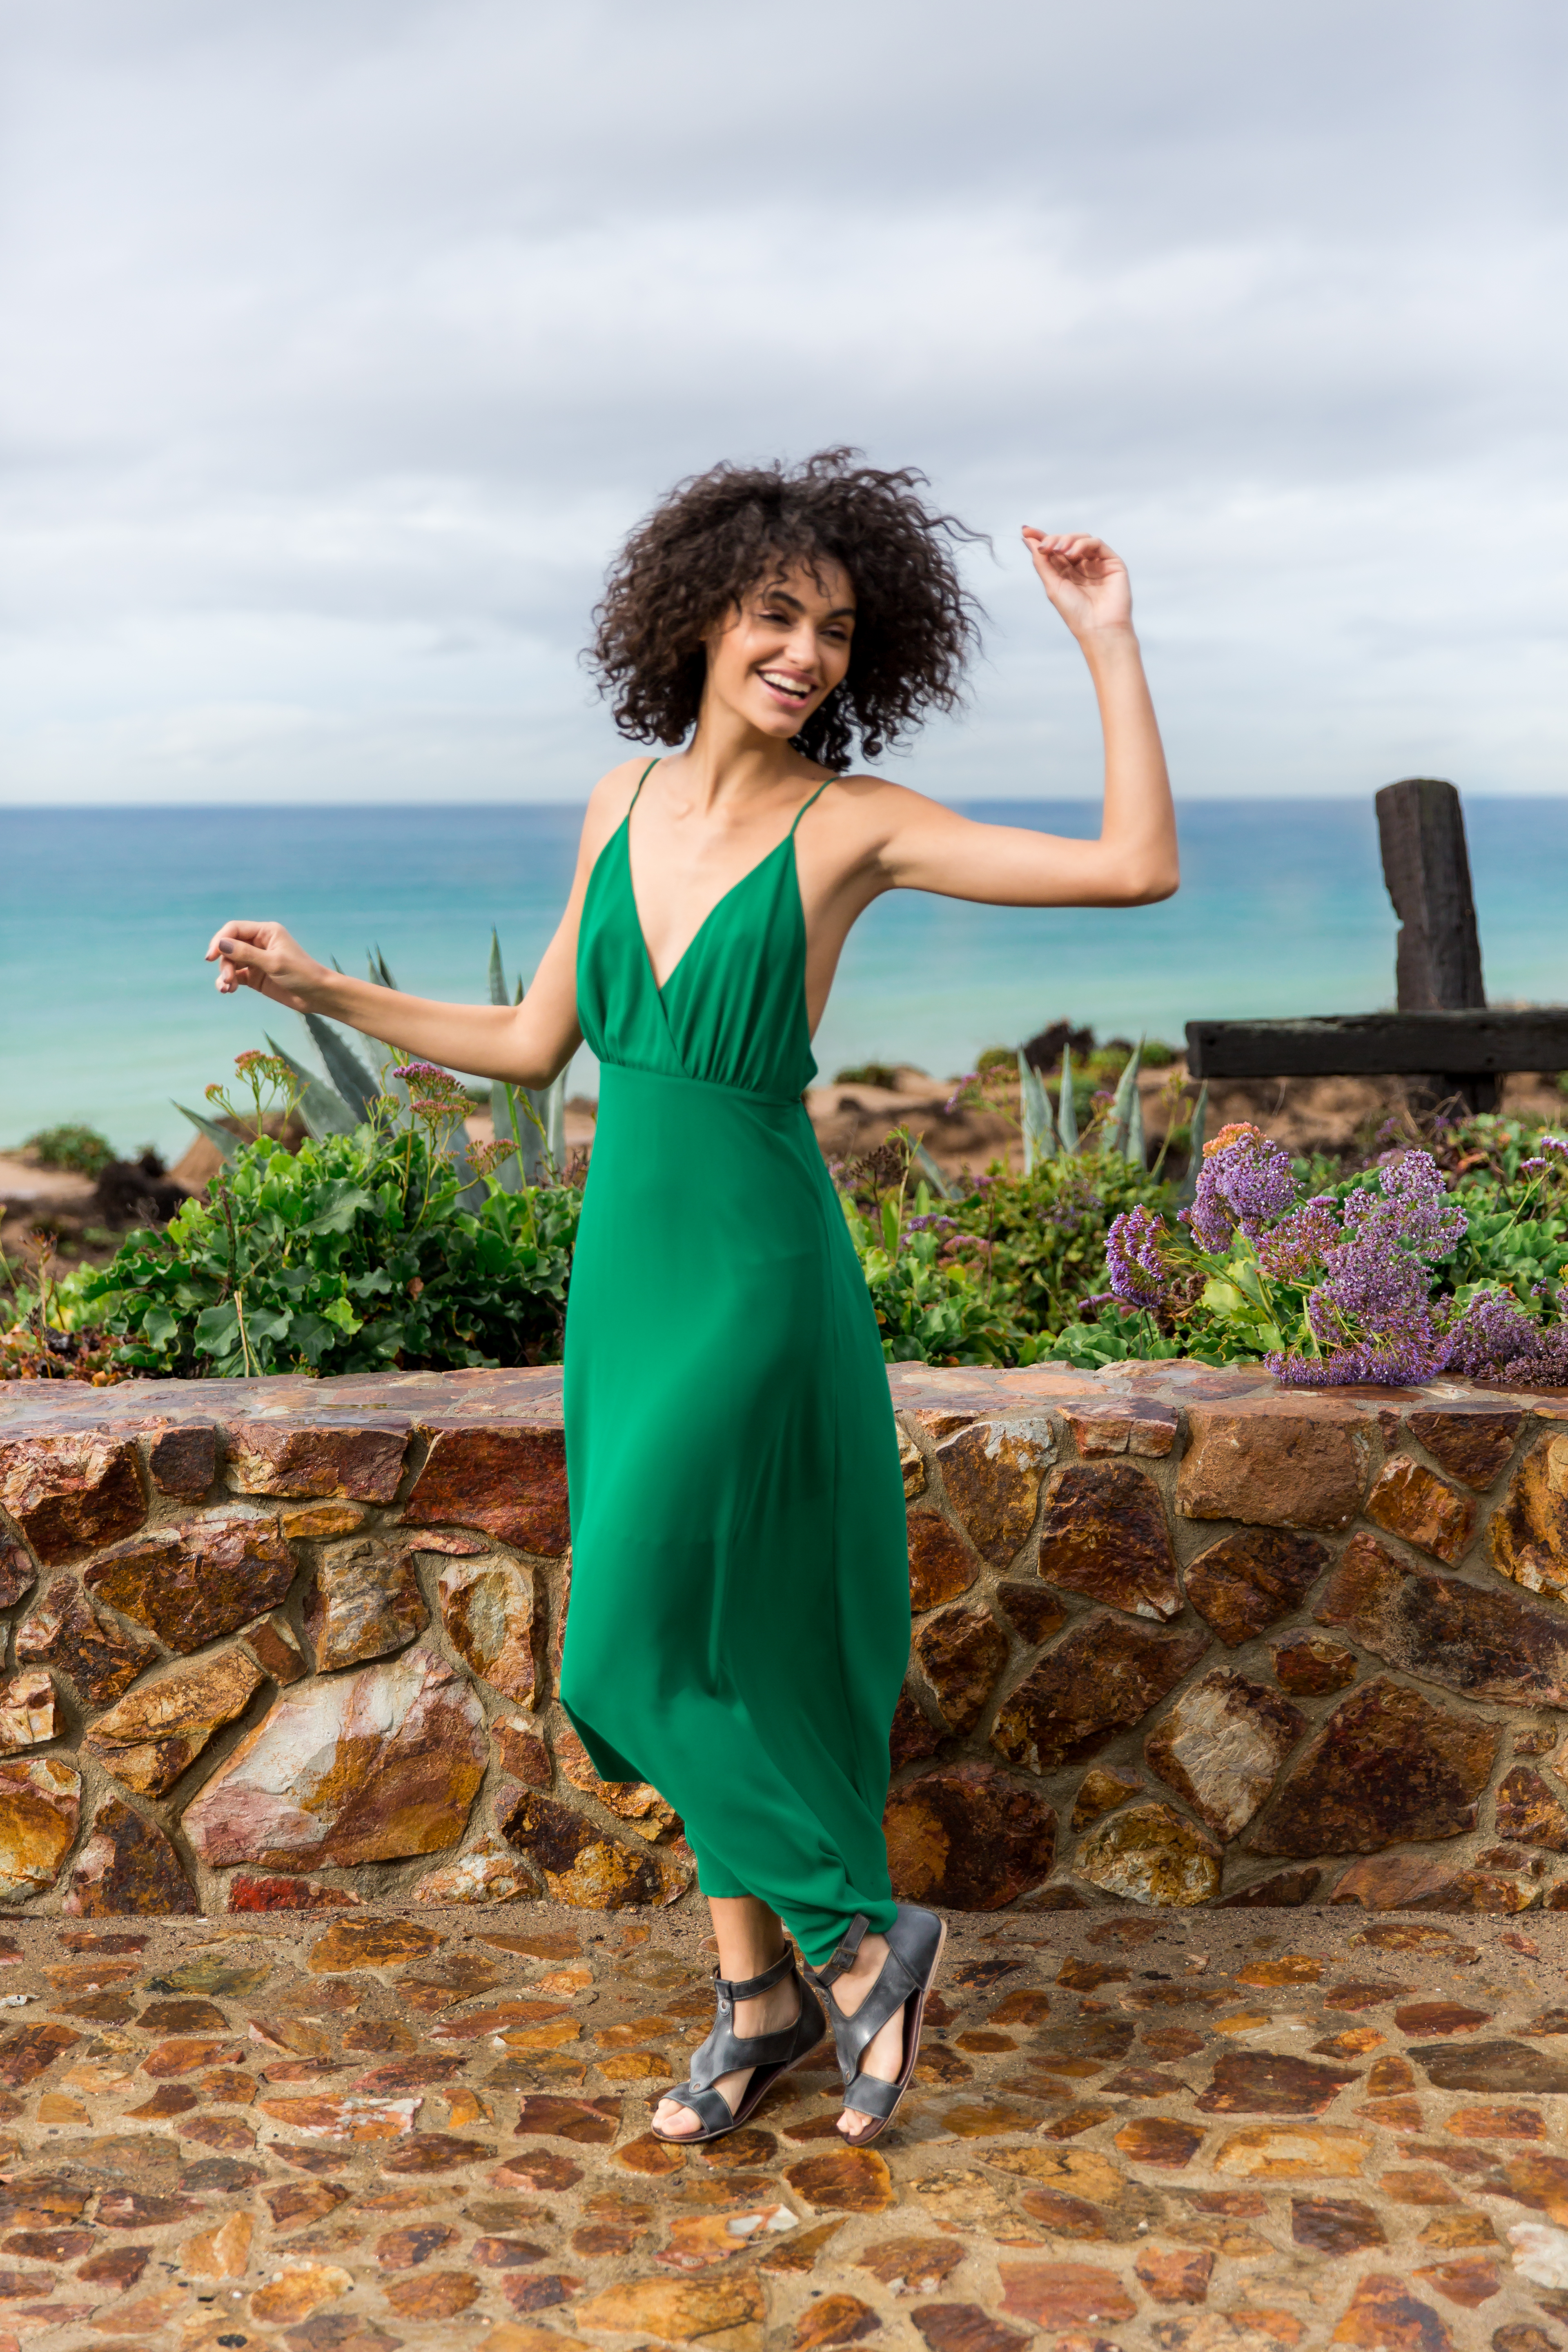 Women's Vacation Outfit from Buckle featuring an emerald green maxi dress from Essue and leather sandals from Roan